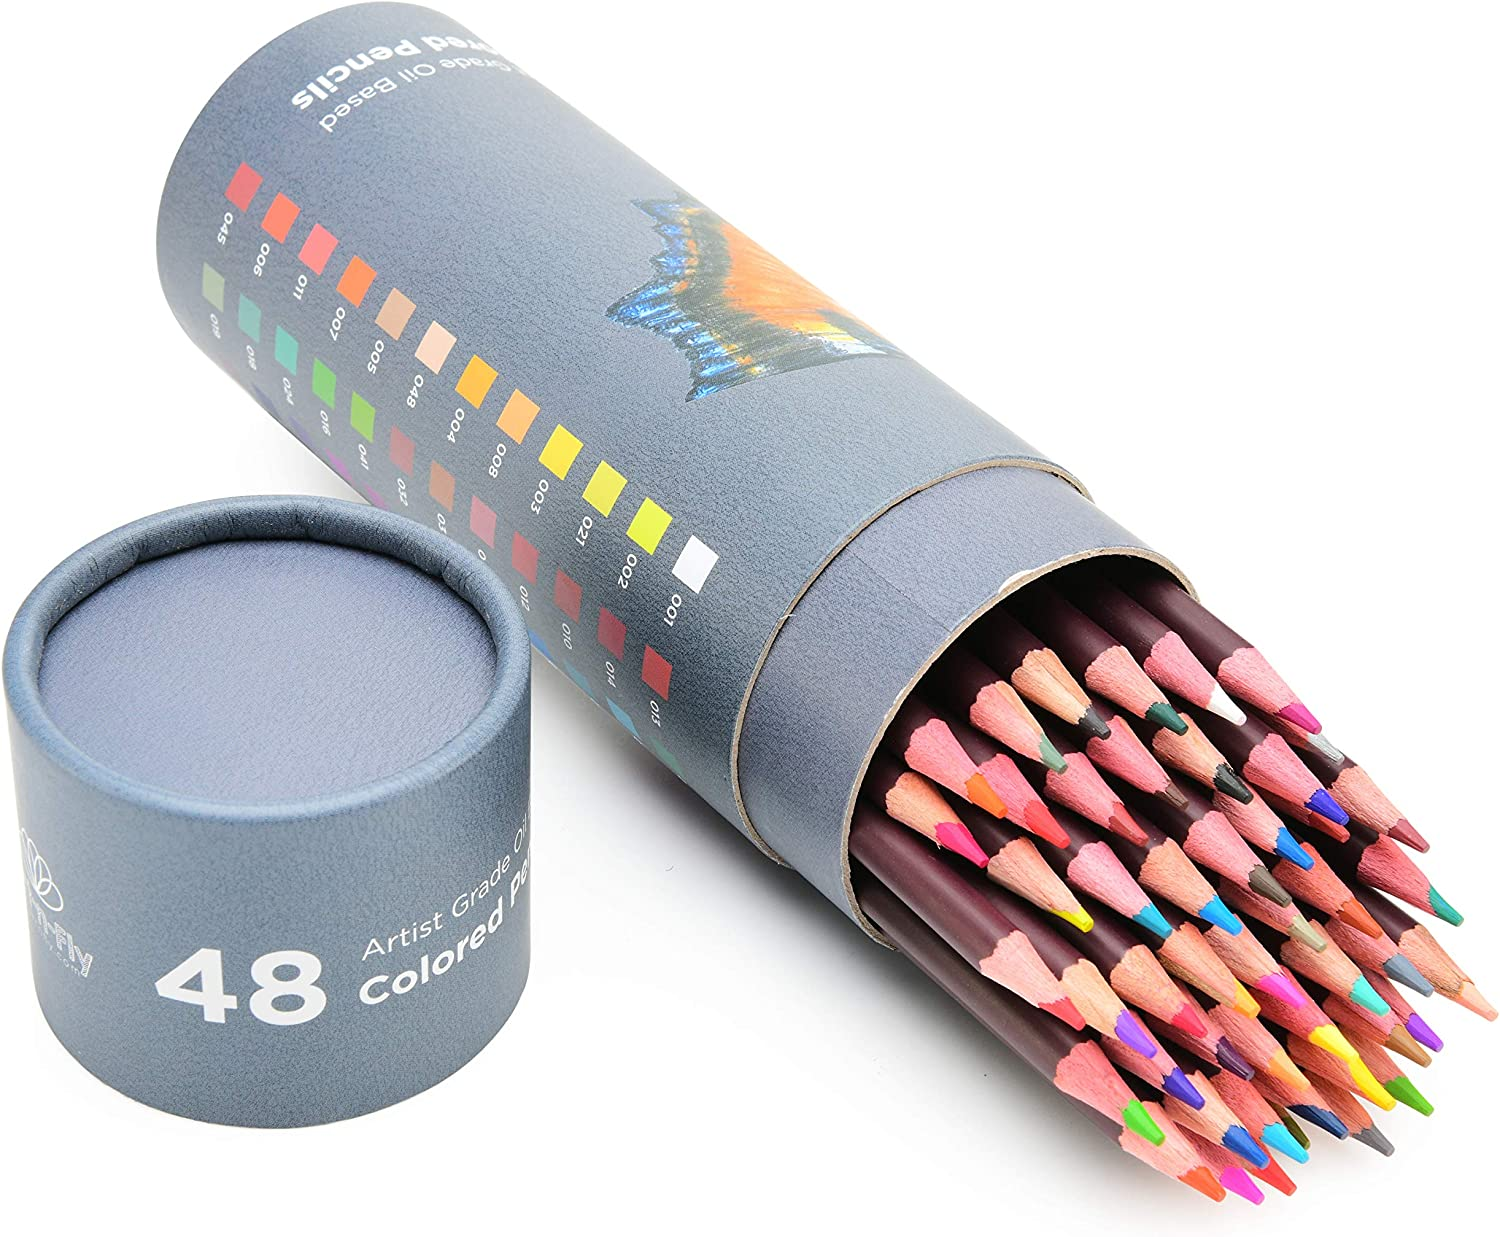 48 Professional Oil Based Colored Pencils for Artist Including Skin Tone Color Pencils for Coloring Drawing and Sketching